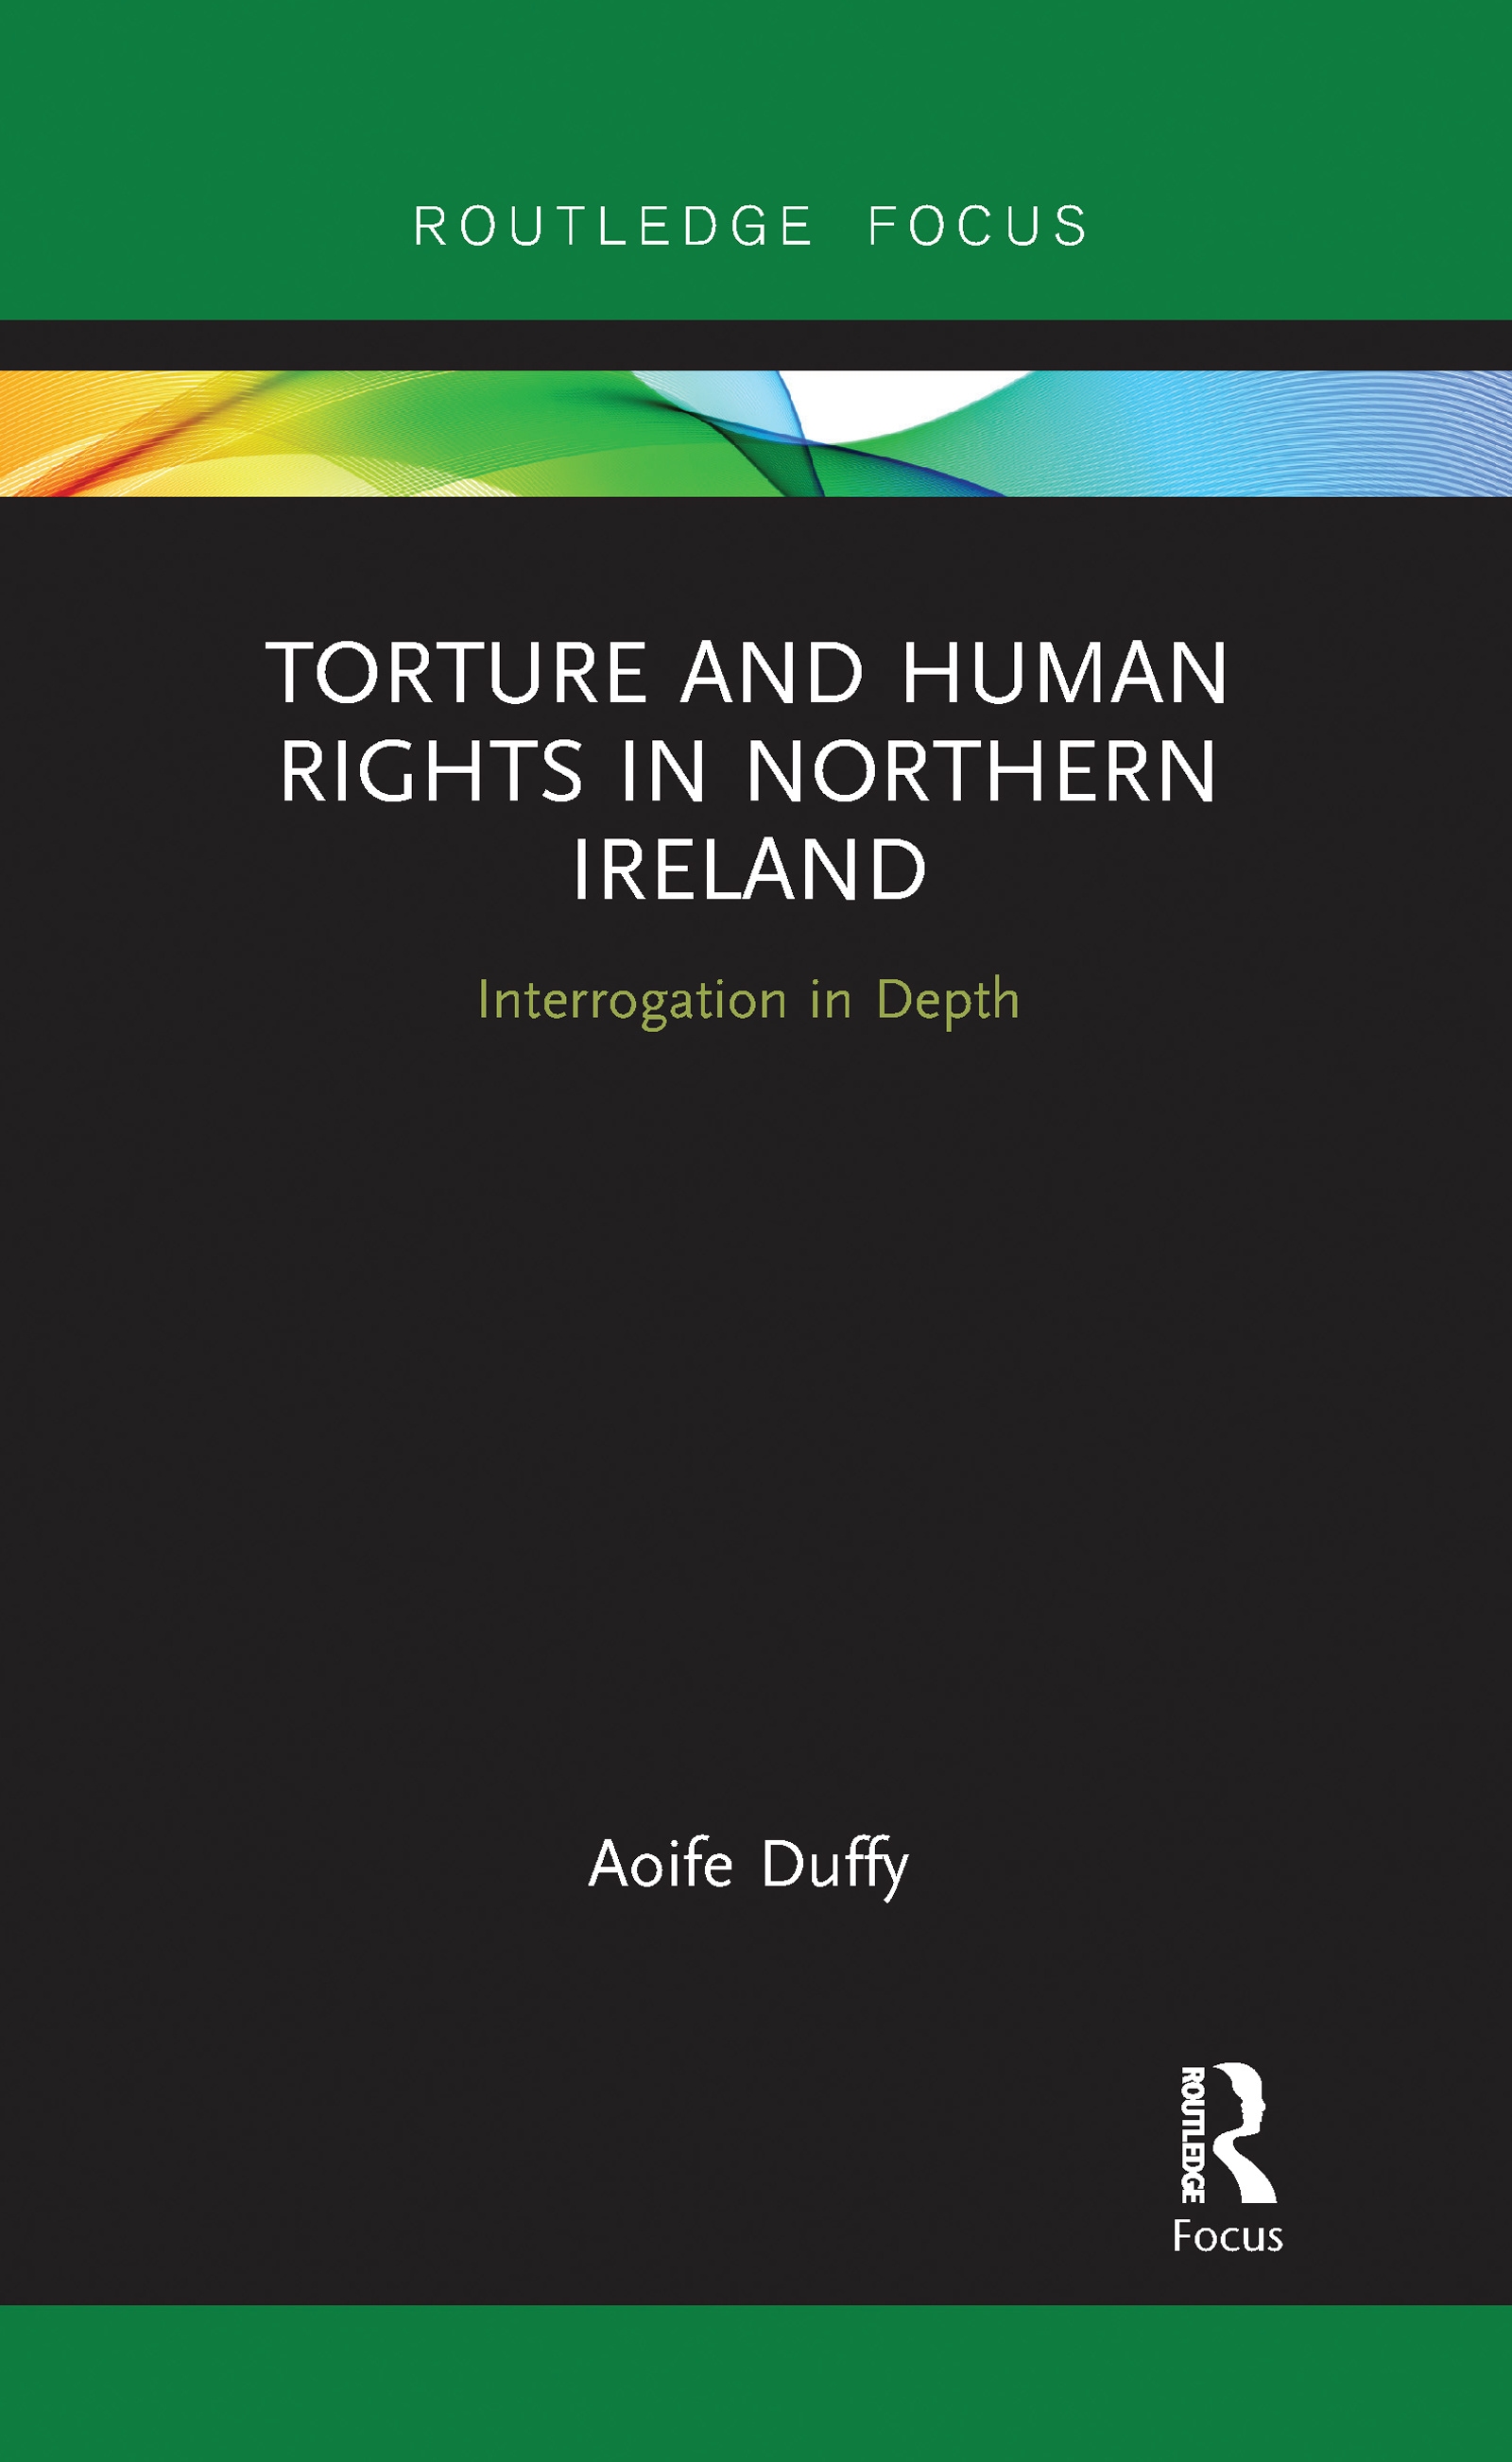 Torture and Human Rights in Northern Ireland